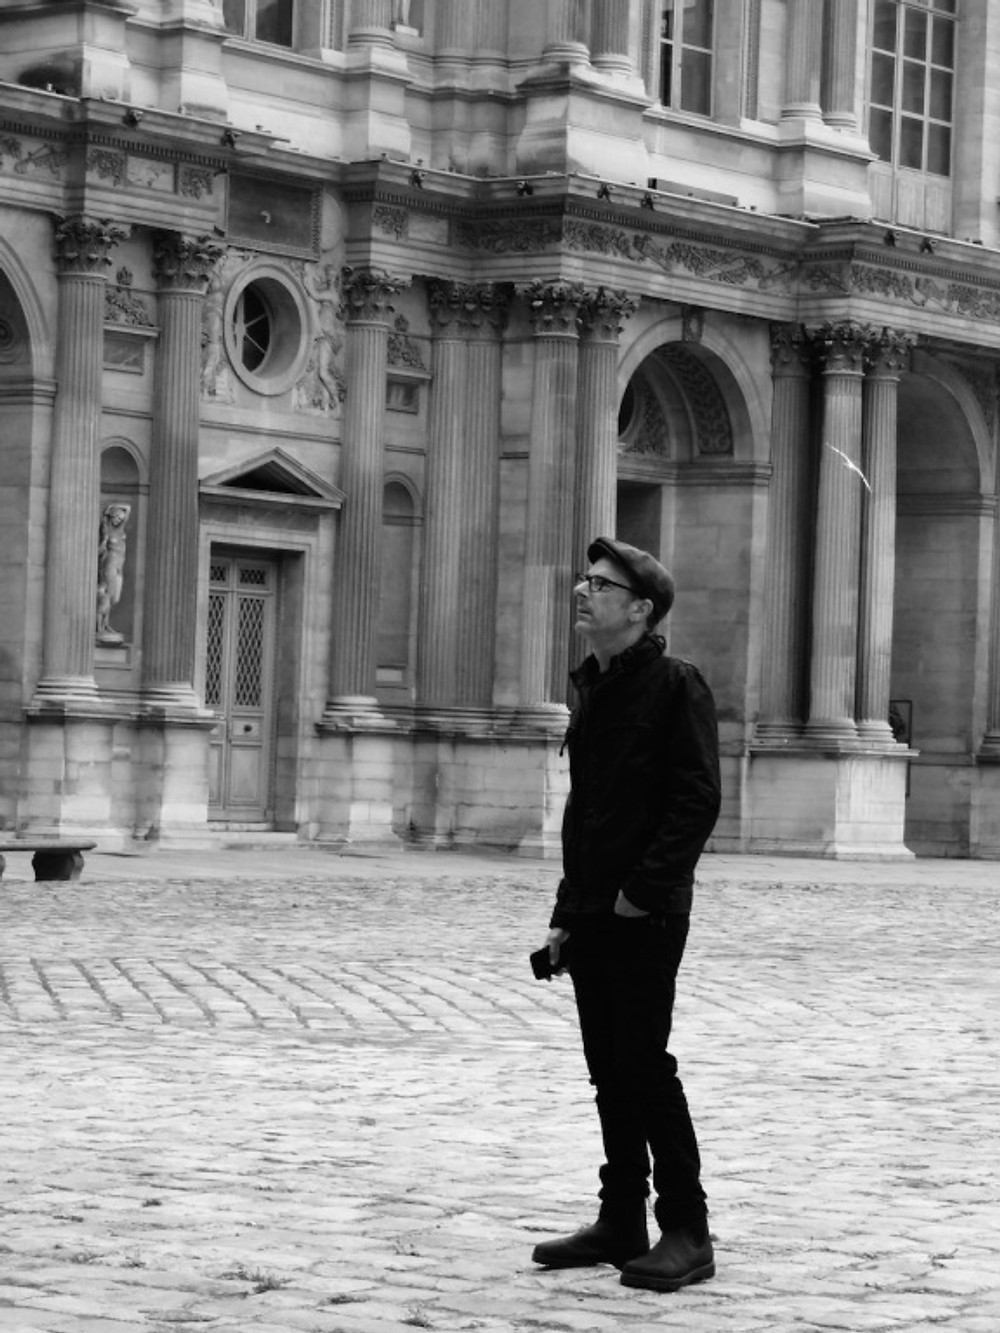 Seeing Dan's amazement walking in the courtyard at the Louvre was wonderful.